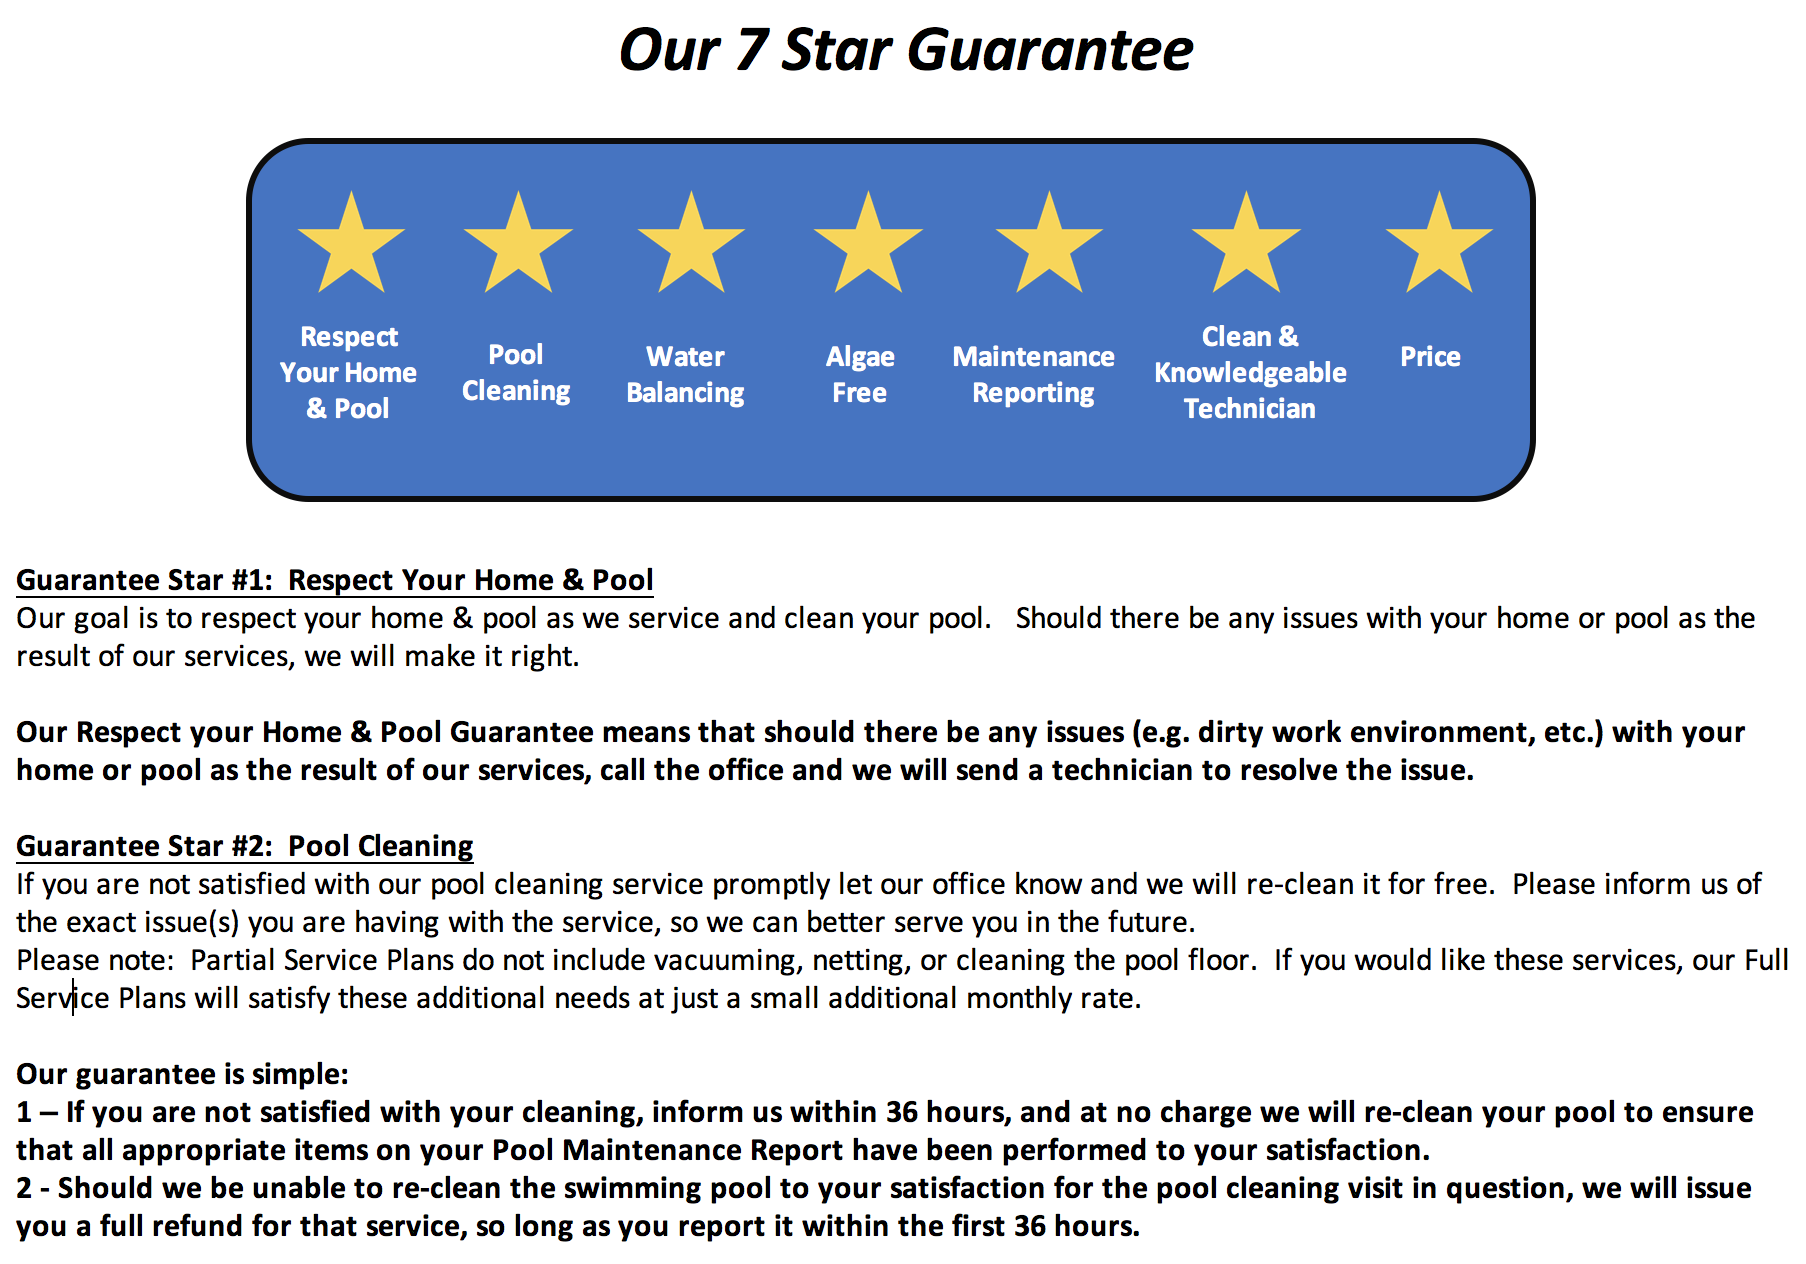 7 Star Allen Pool Service Guarantee